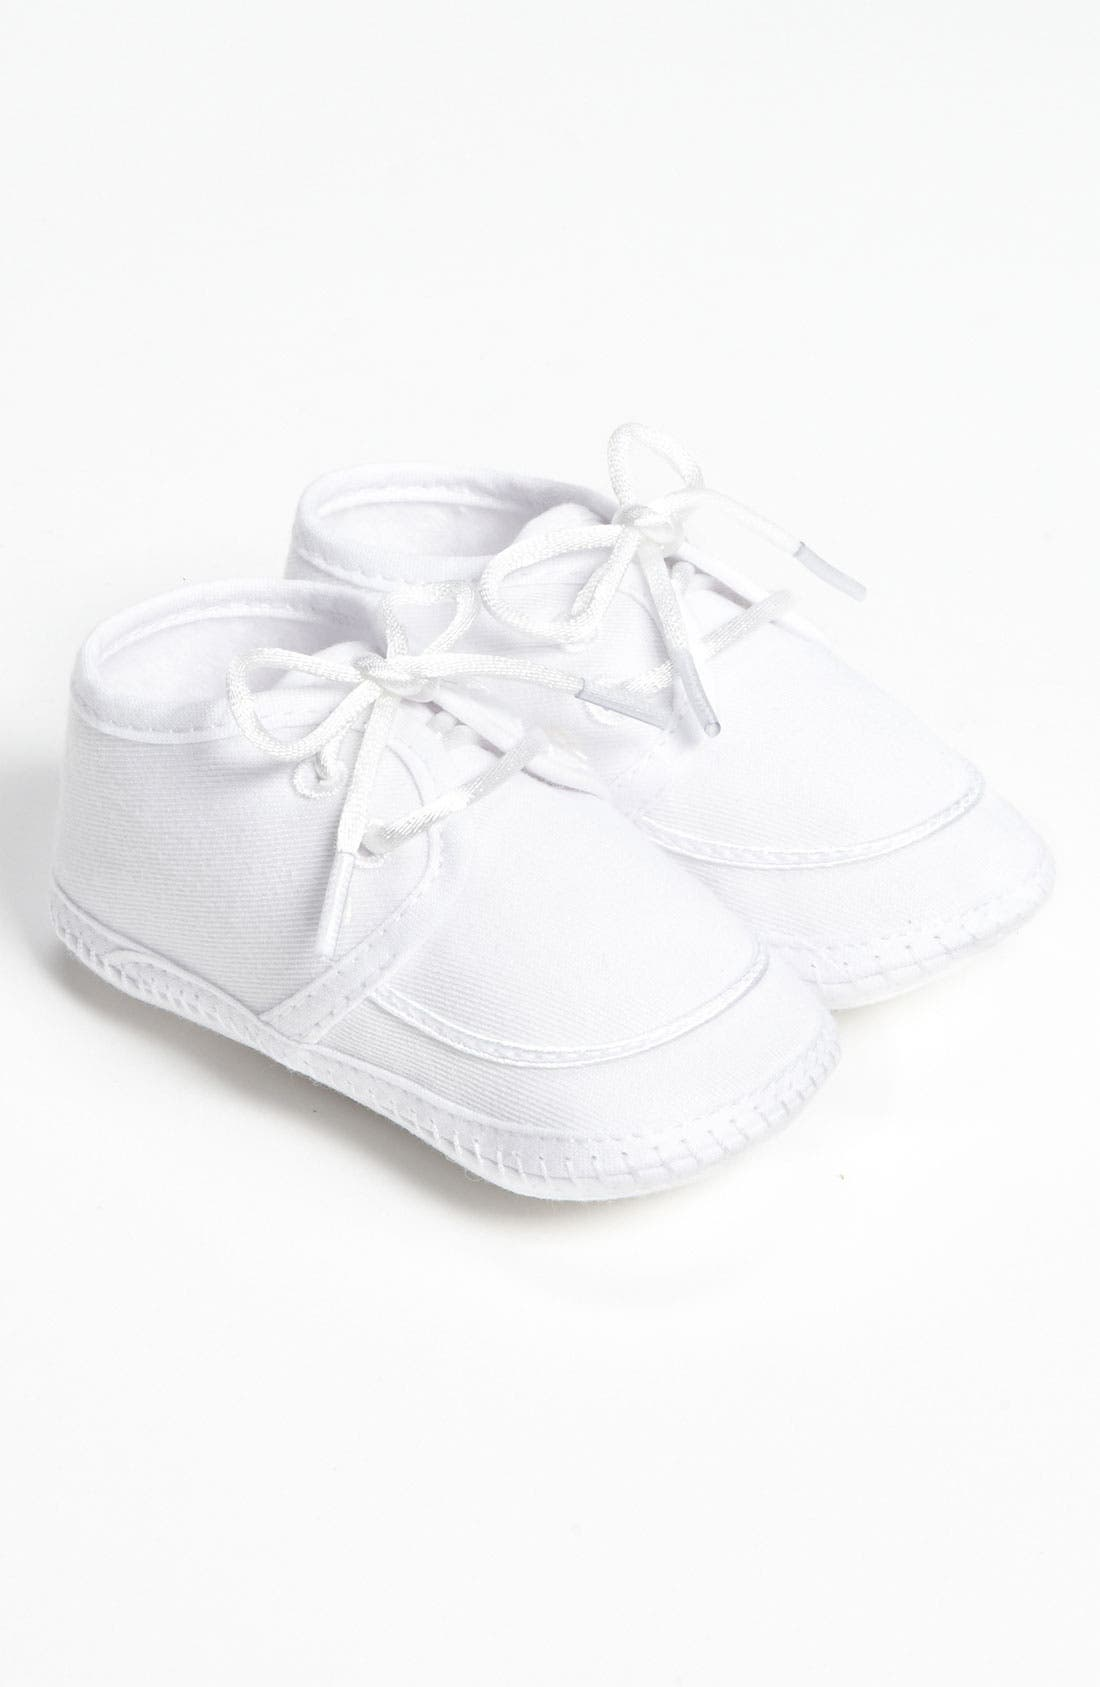 Little Things Mean a Lot Gabardine Shoe (Baby)